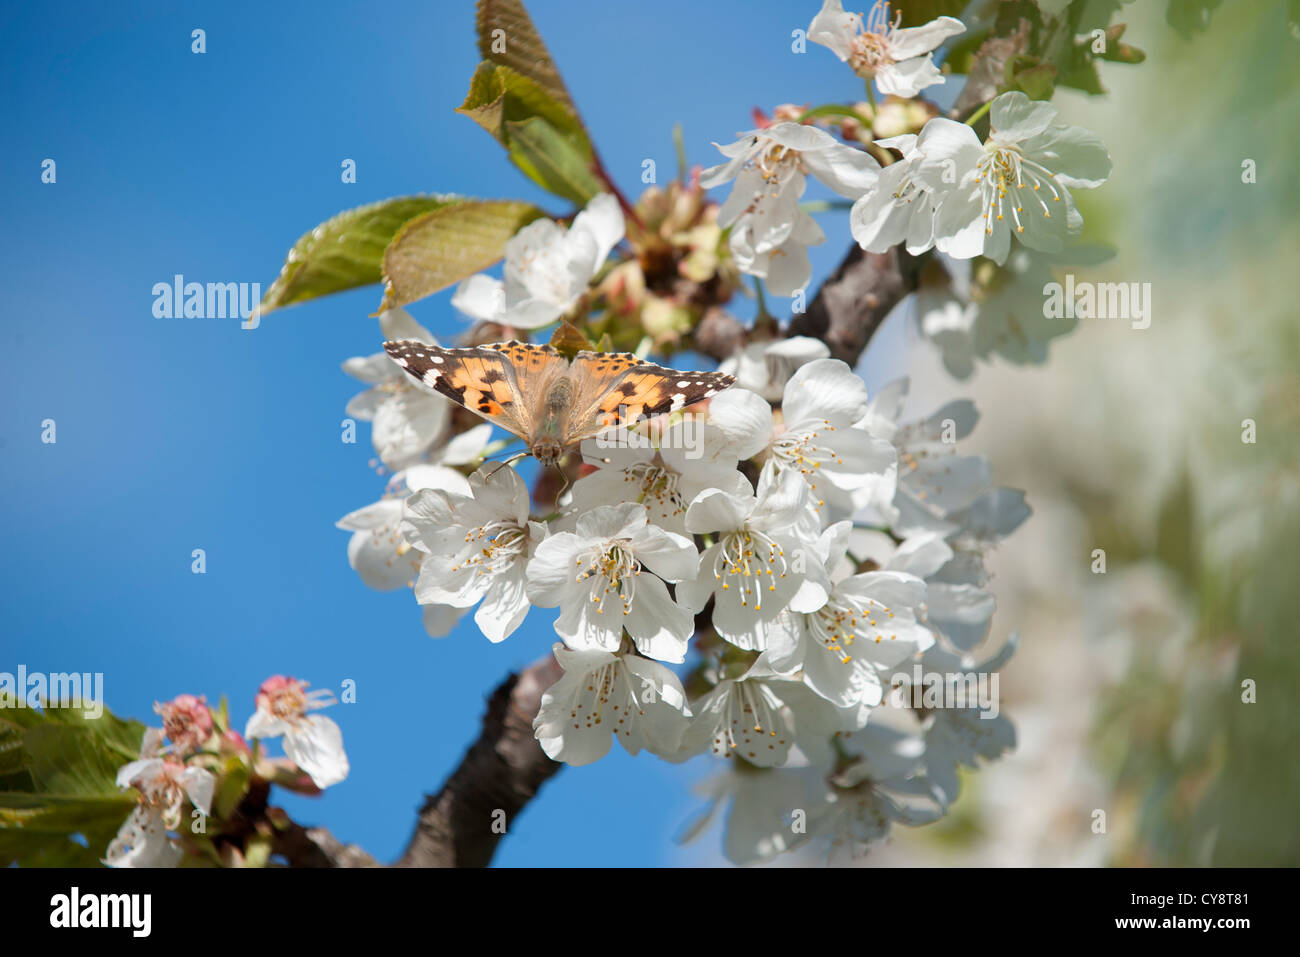 Butterfly on cherry blossom - Stock Image